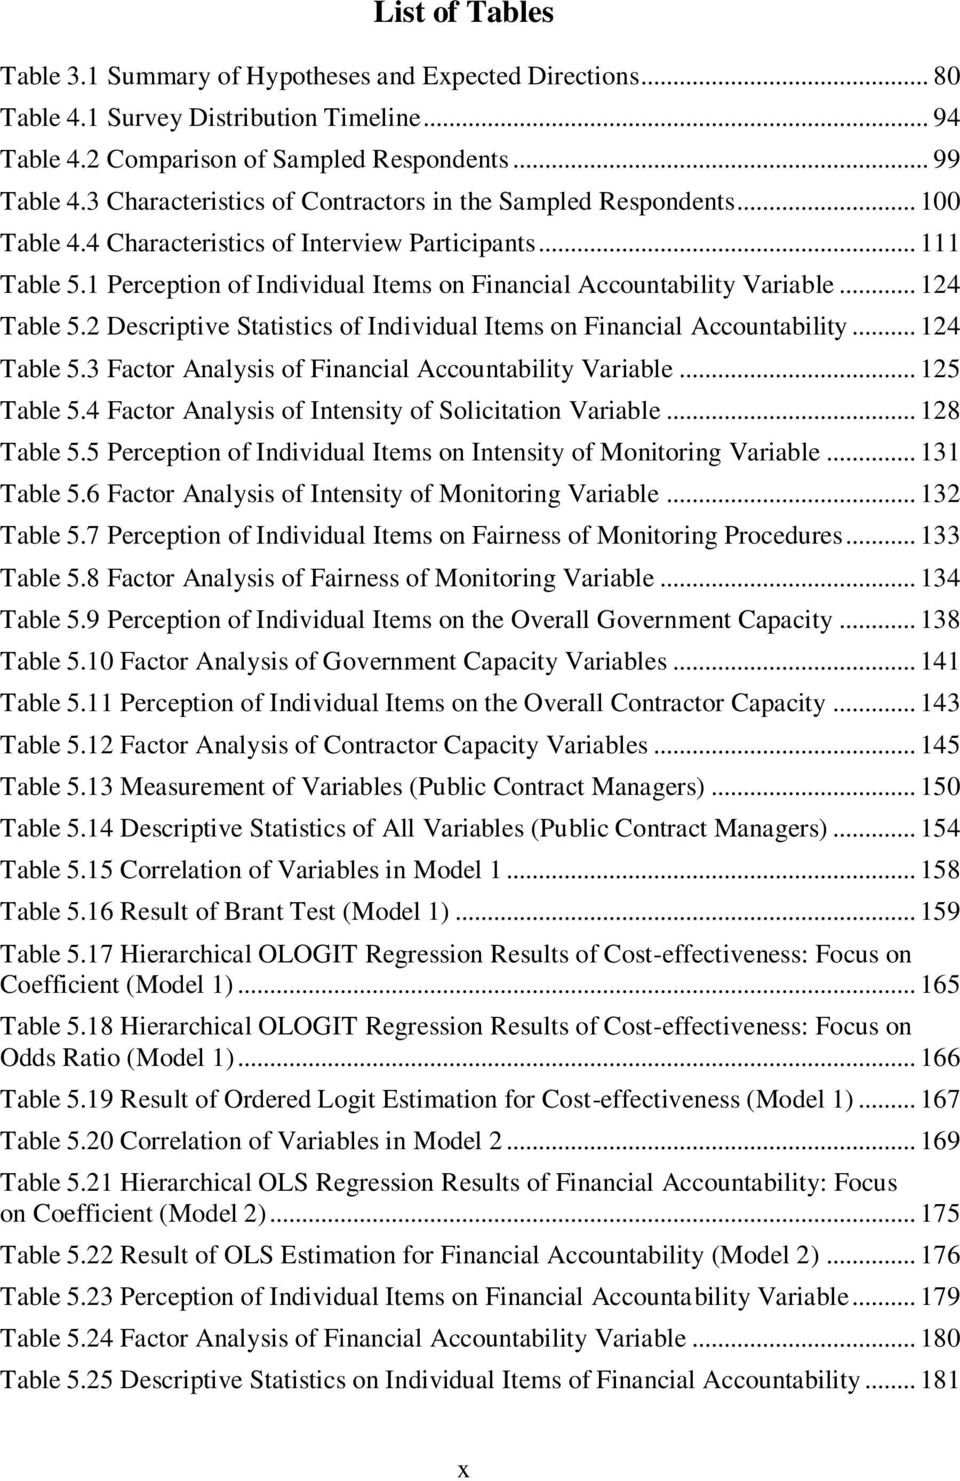 1 Perception of Individual Items on Financial Accountability Variable... 124 Table 5.2 Descriptive Statistics of Individual Items on Financial Accountability... 124 Table 5.3 Factor Analysis of Financial Accountability Variable.